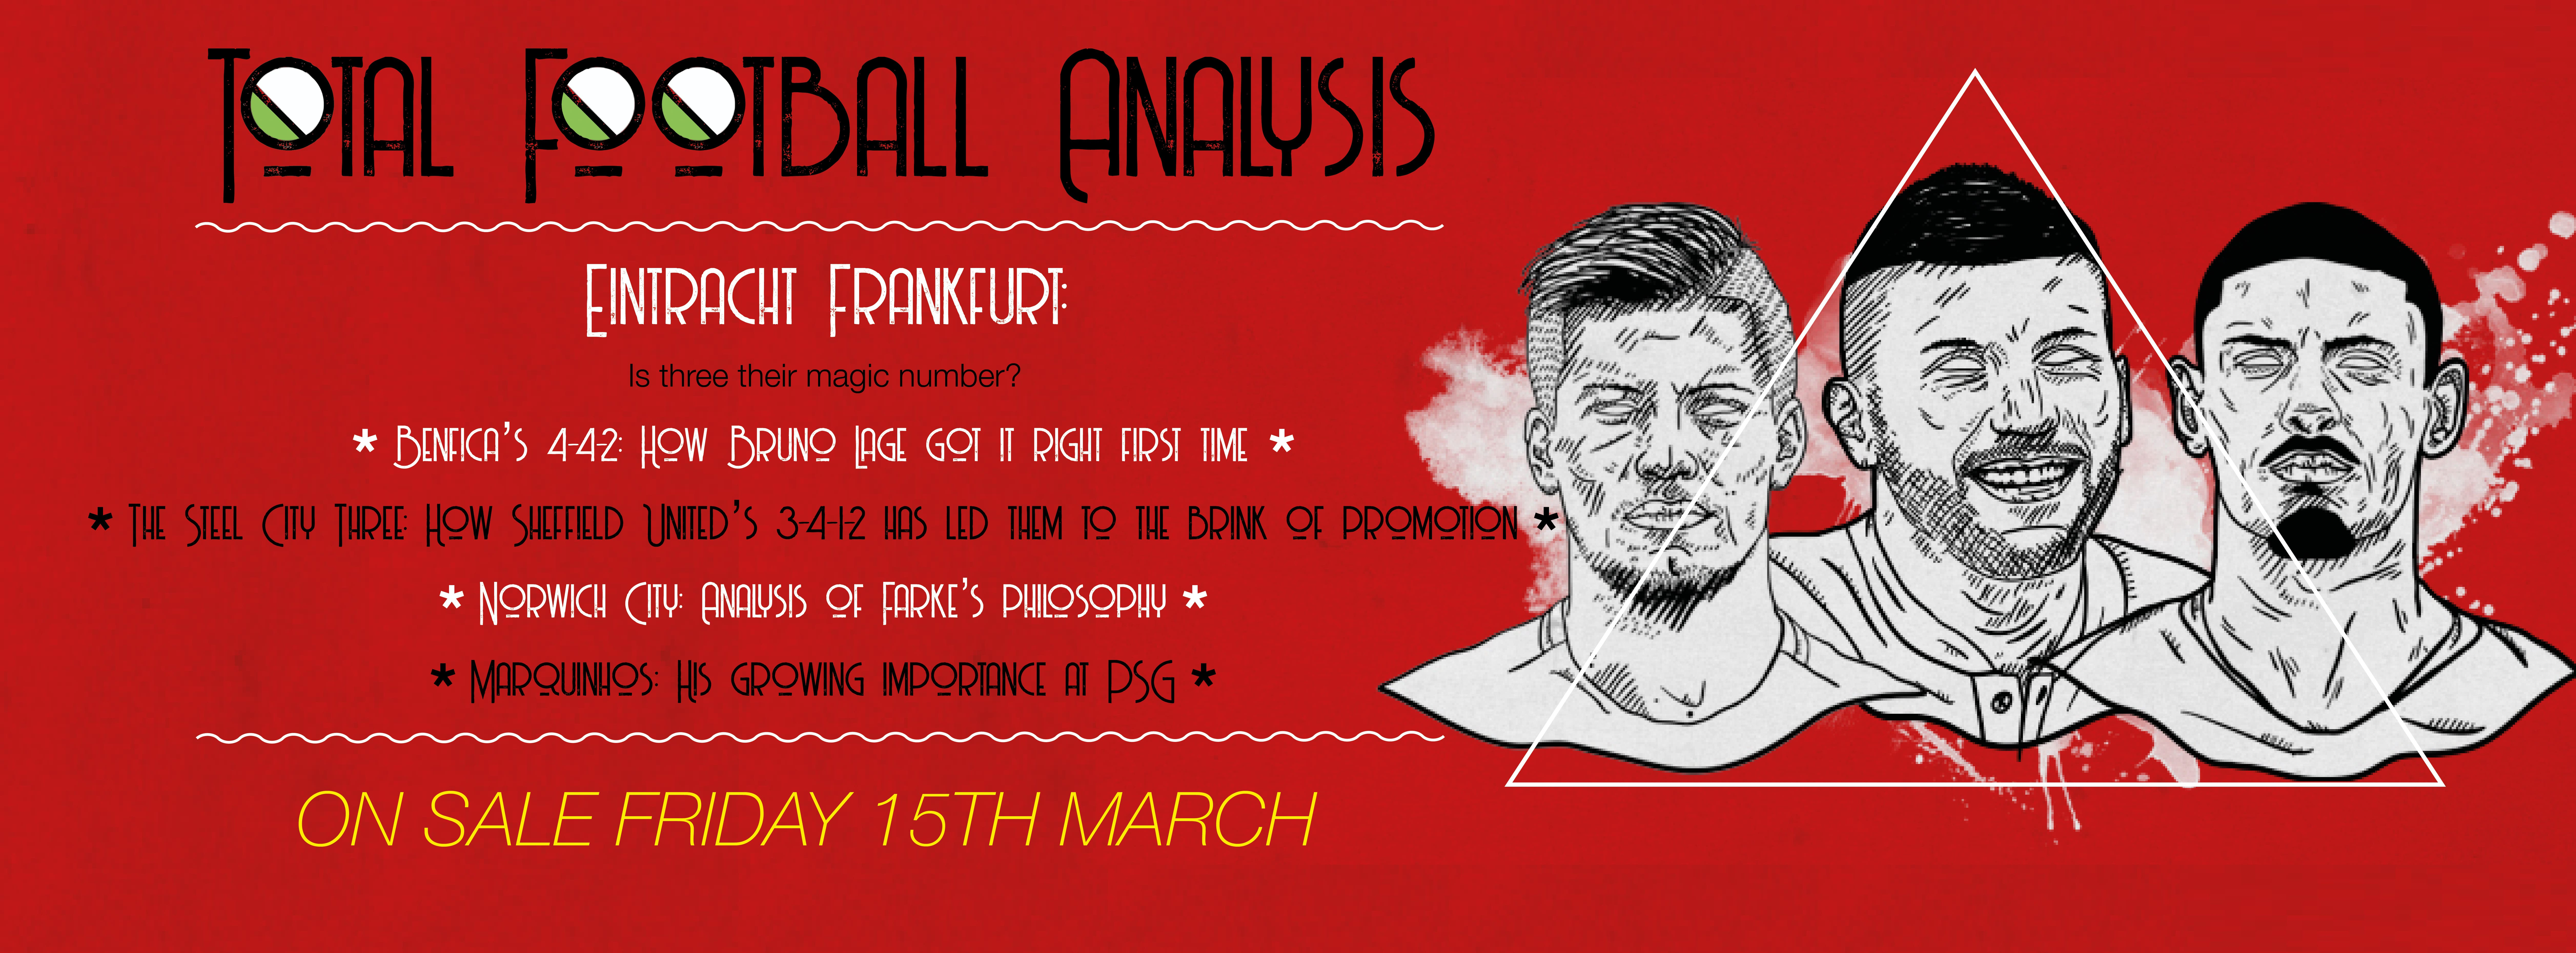 Total Football Analysis Magazine #5: March 2019